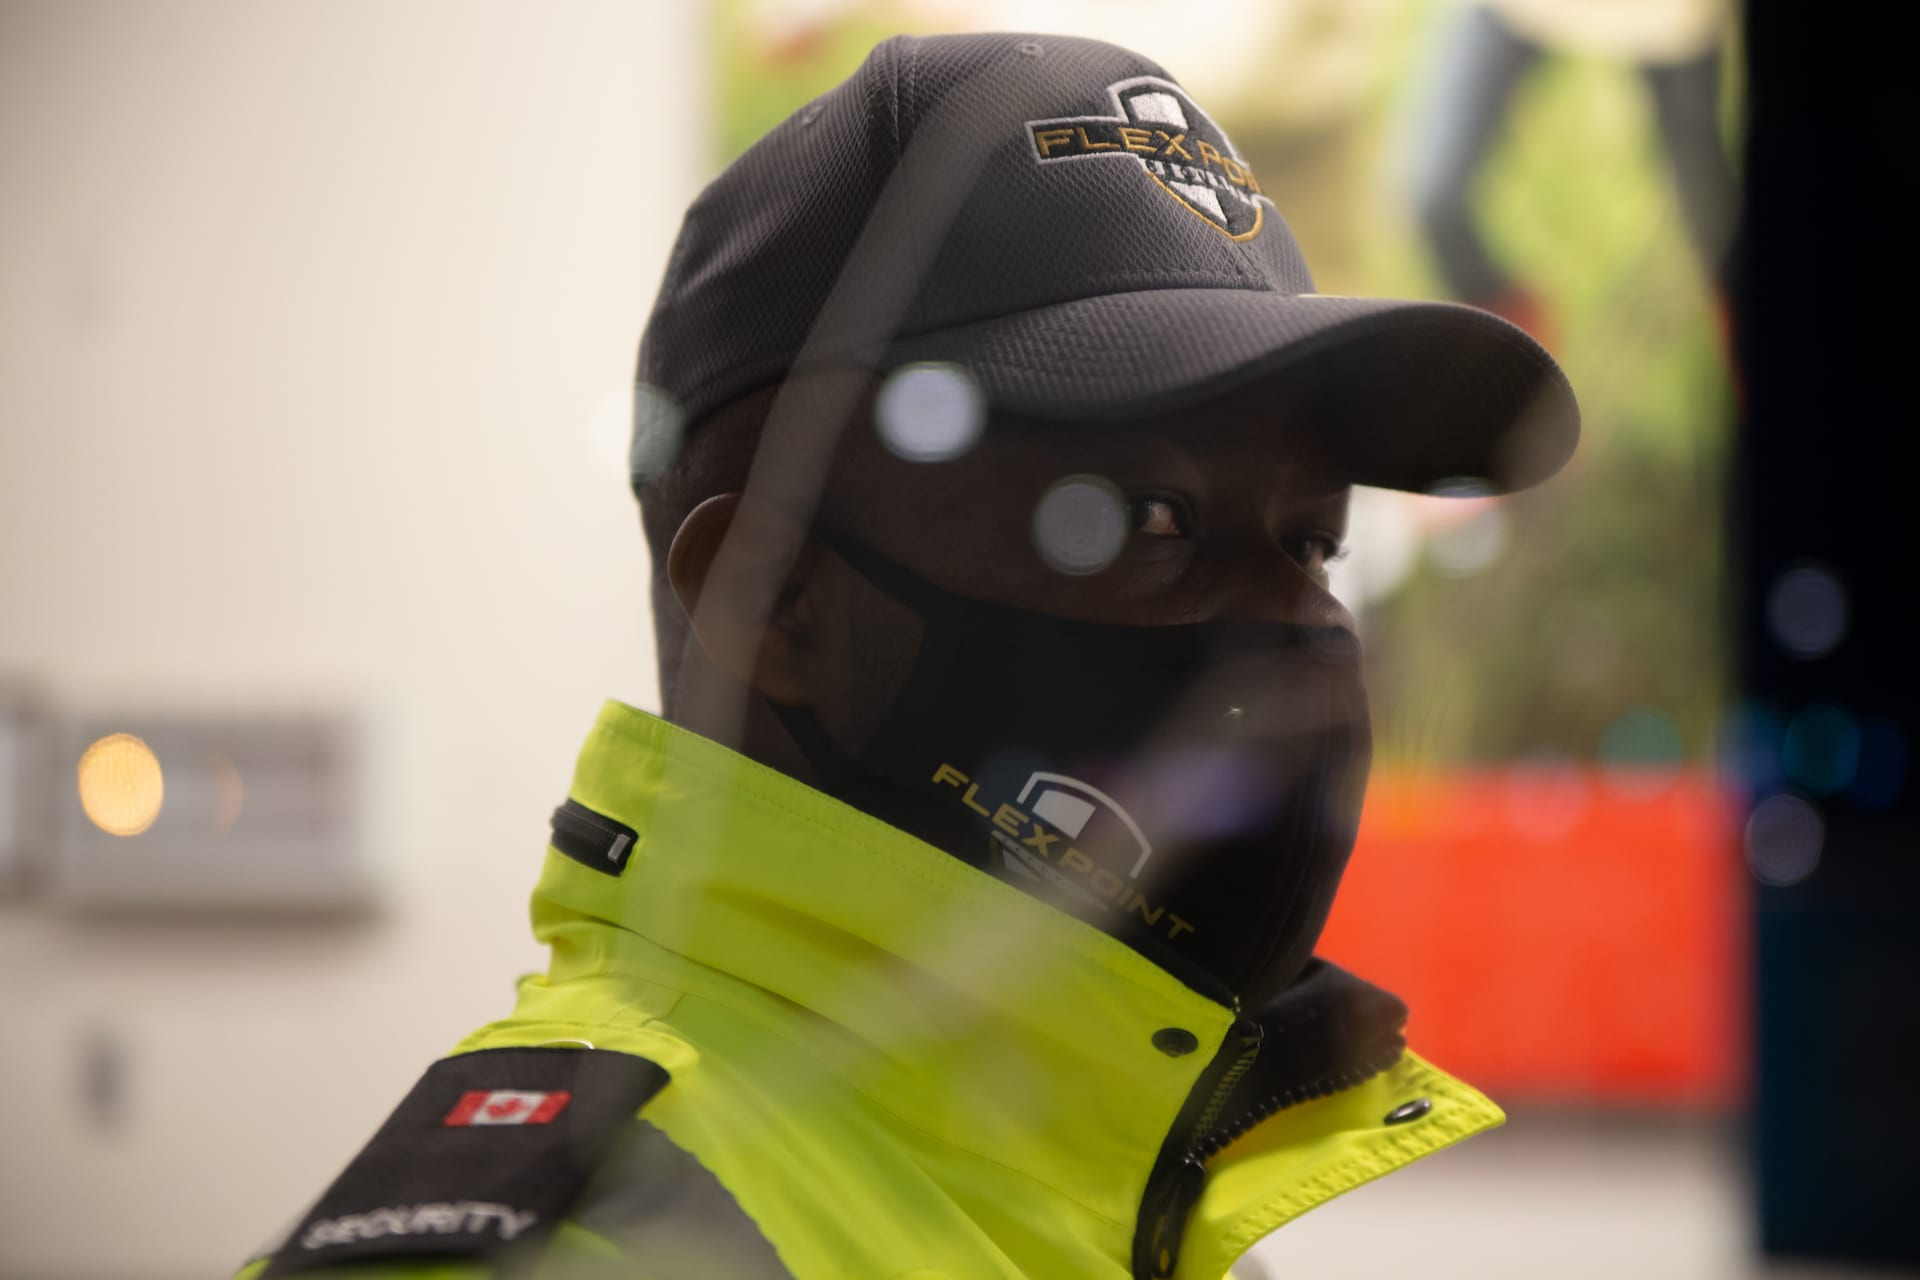 Flex Point Security guard at a commercial building wearing a branded hat, face mask and jacket standing with a blurred background